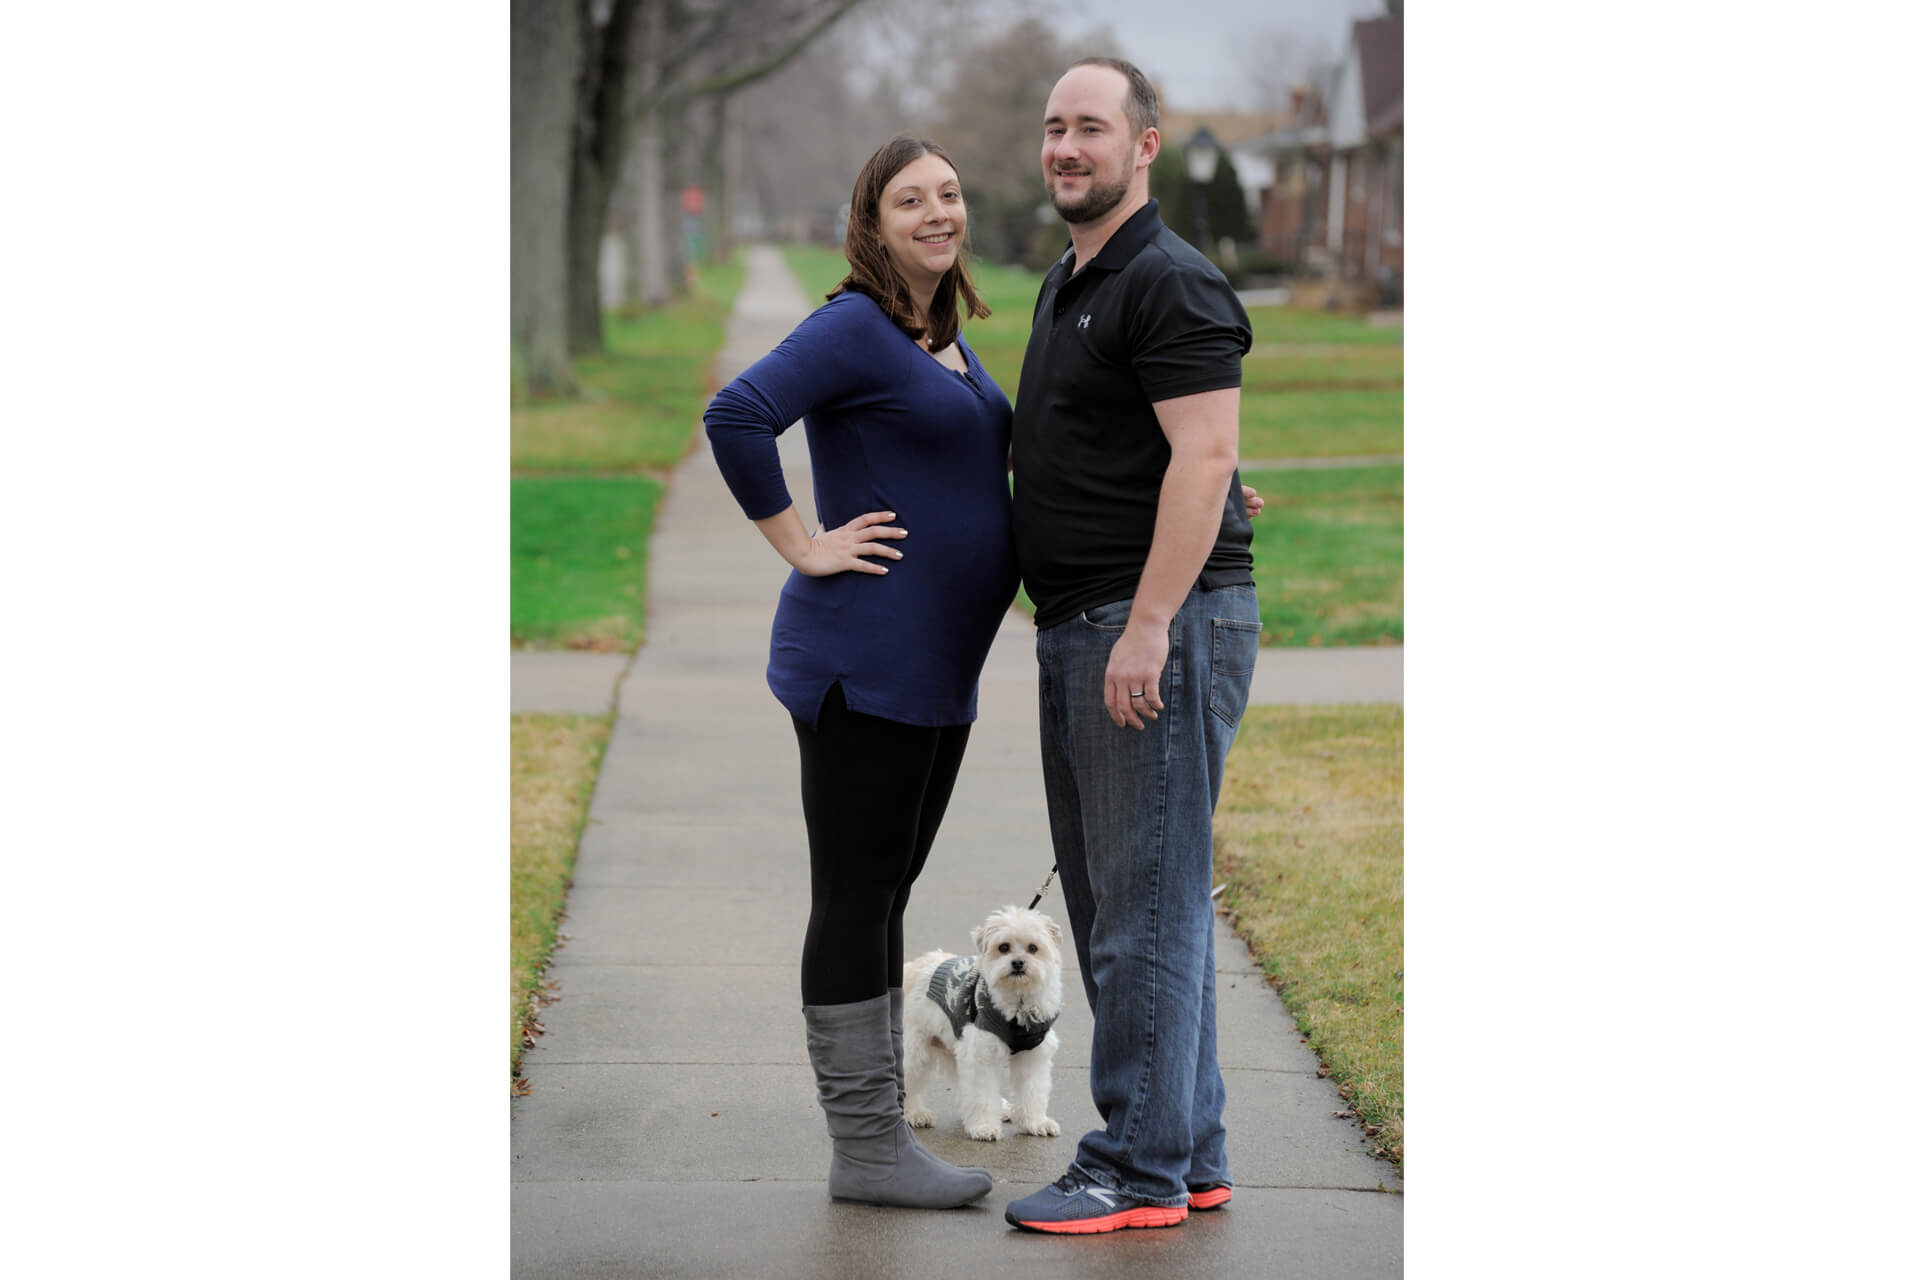 Best Detroit maternity photographer photographs a repeat client along with their dog during a maternity lifestyle photography session in metro Detroit, Michigan.